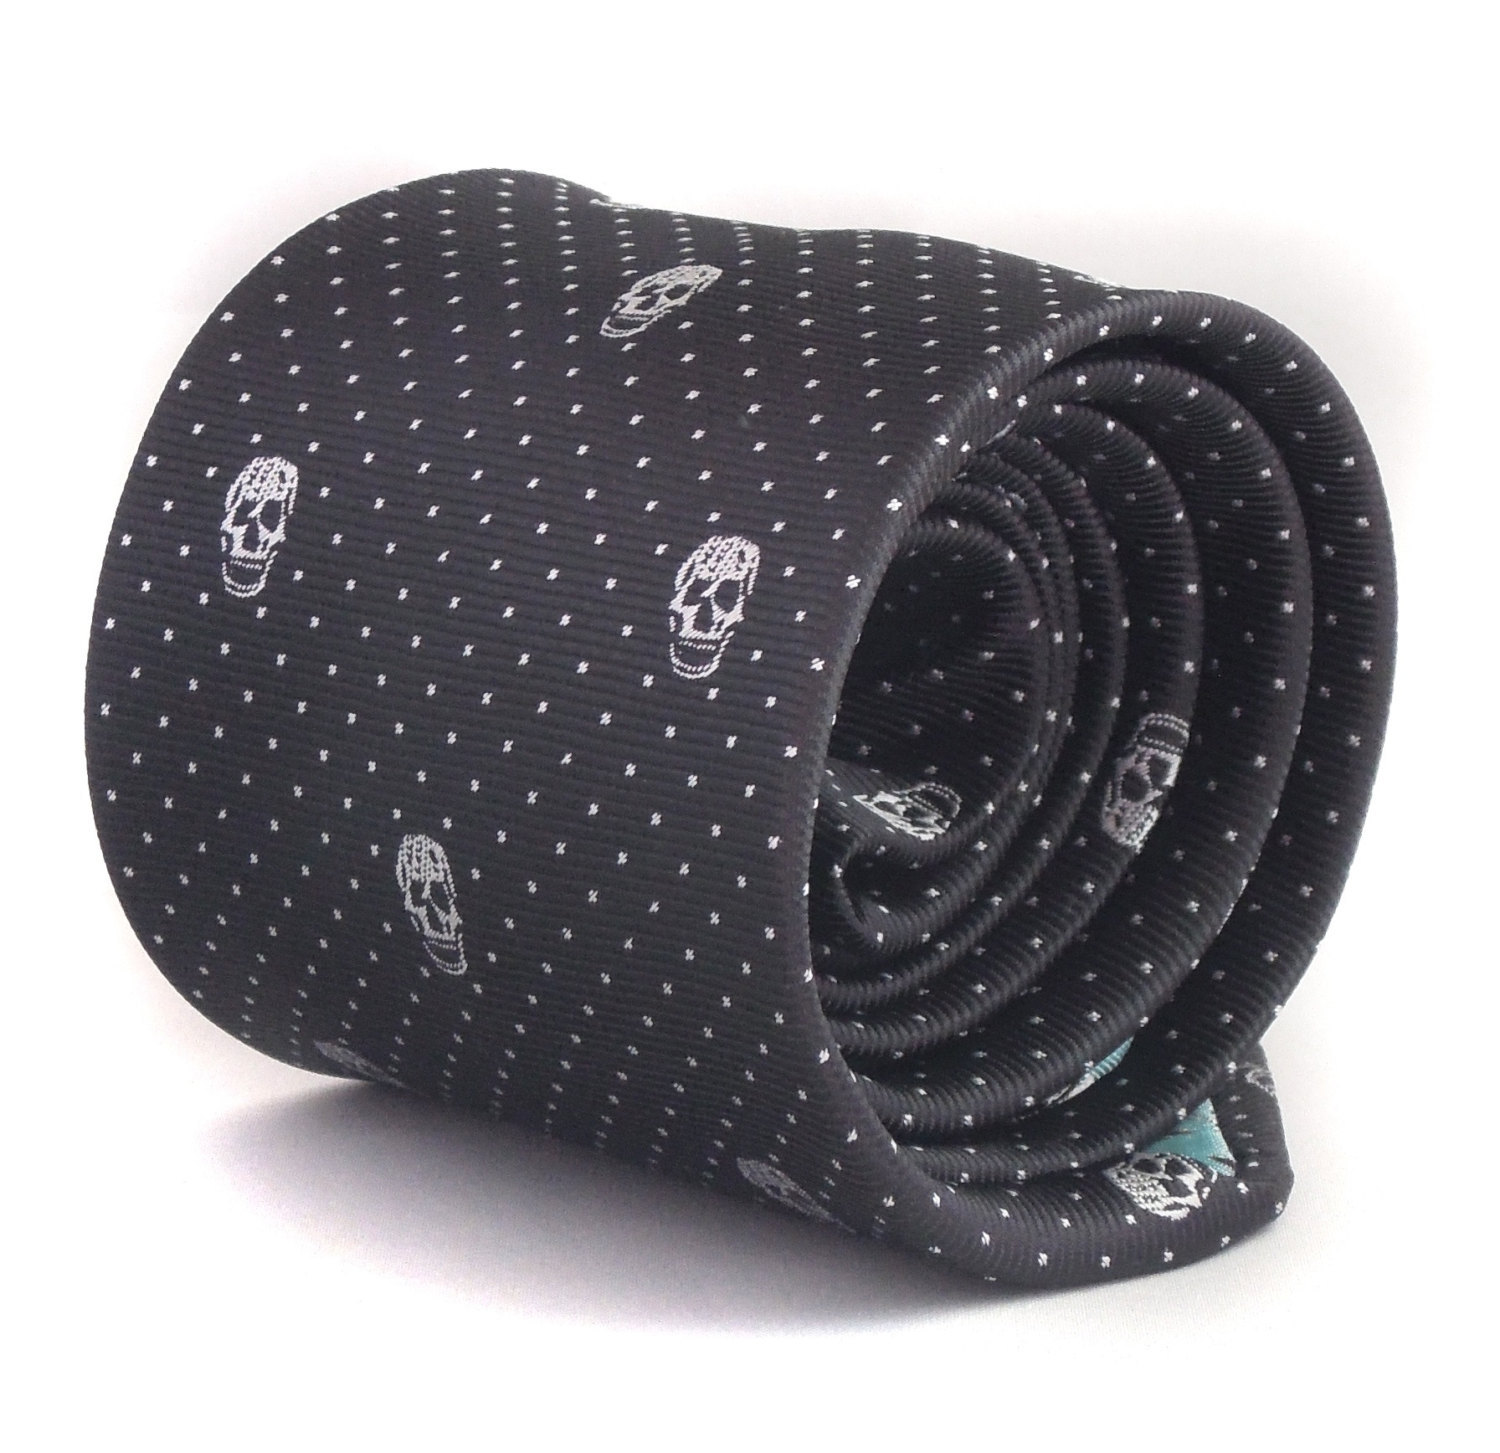 black skulls design tie with signature floral design to rear by Frederick Thomas